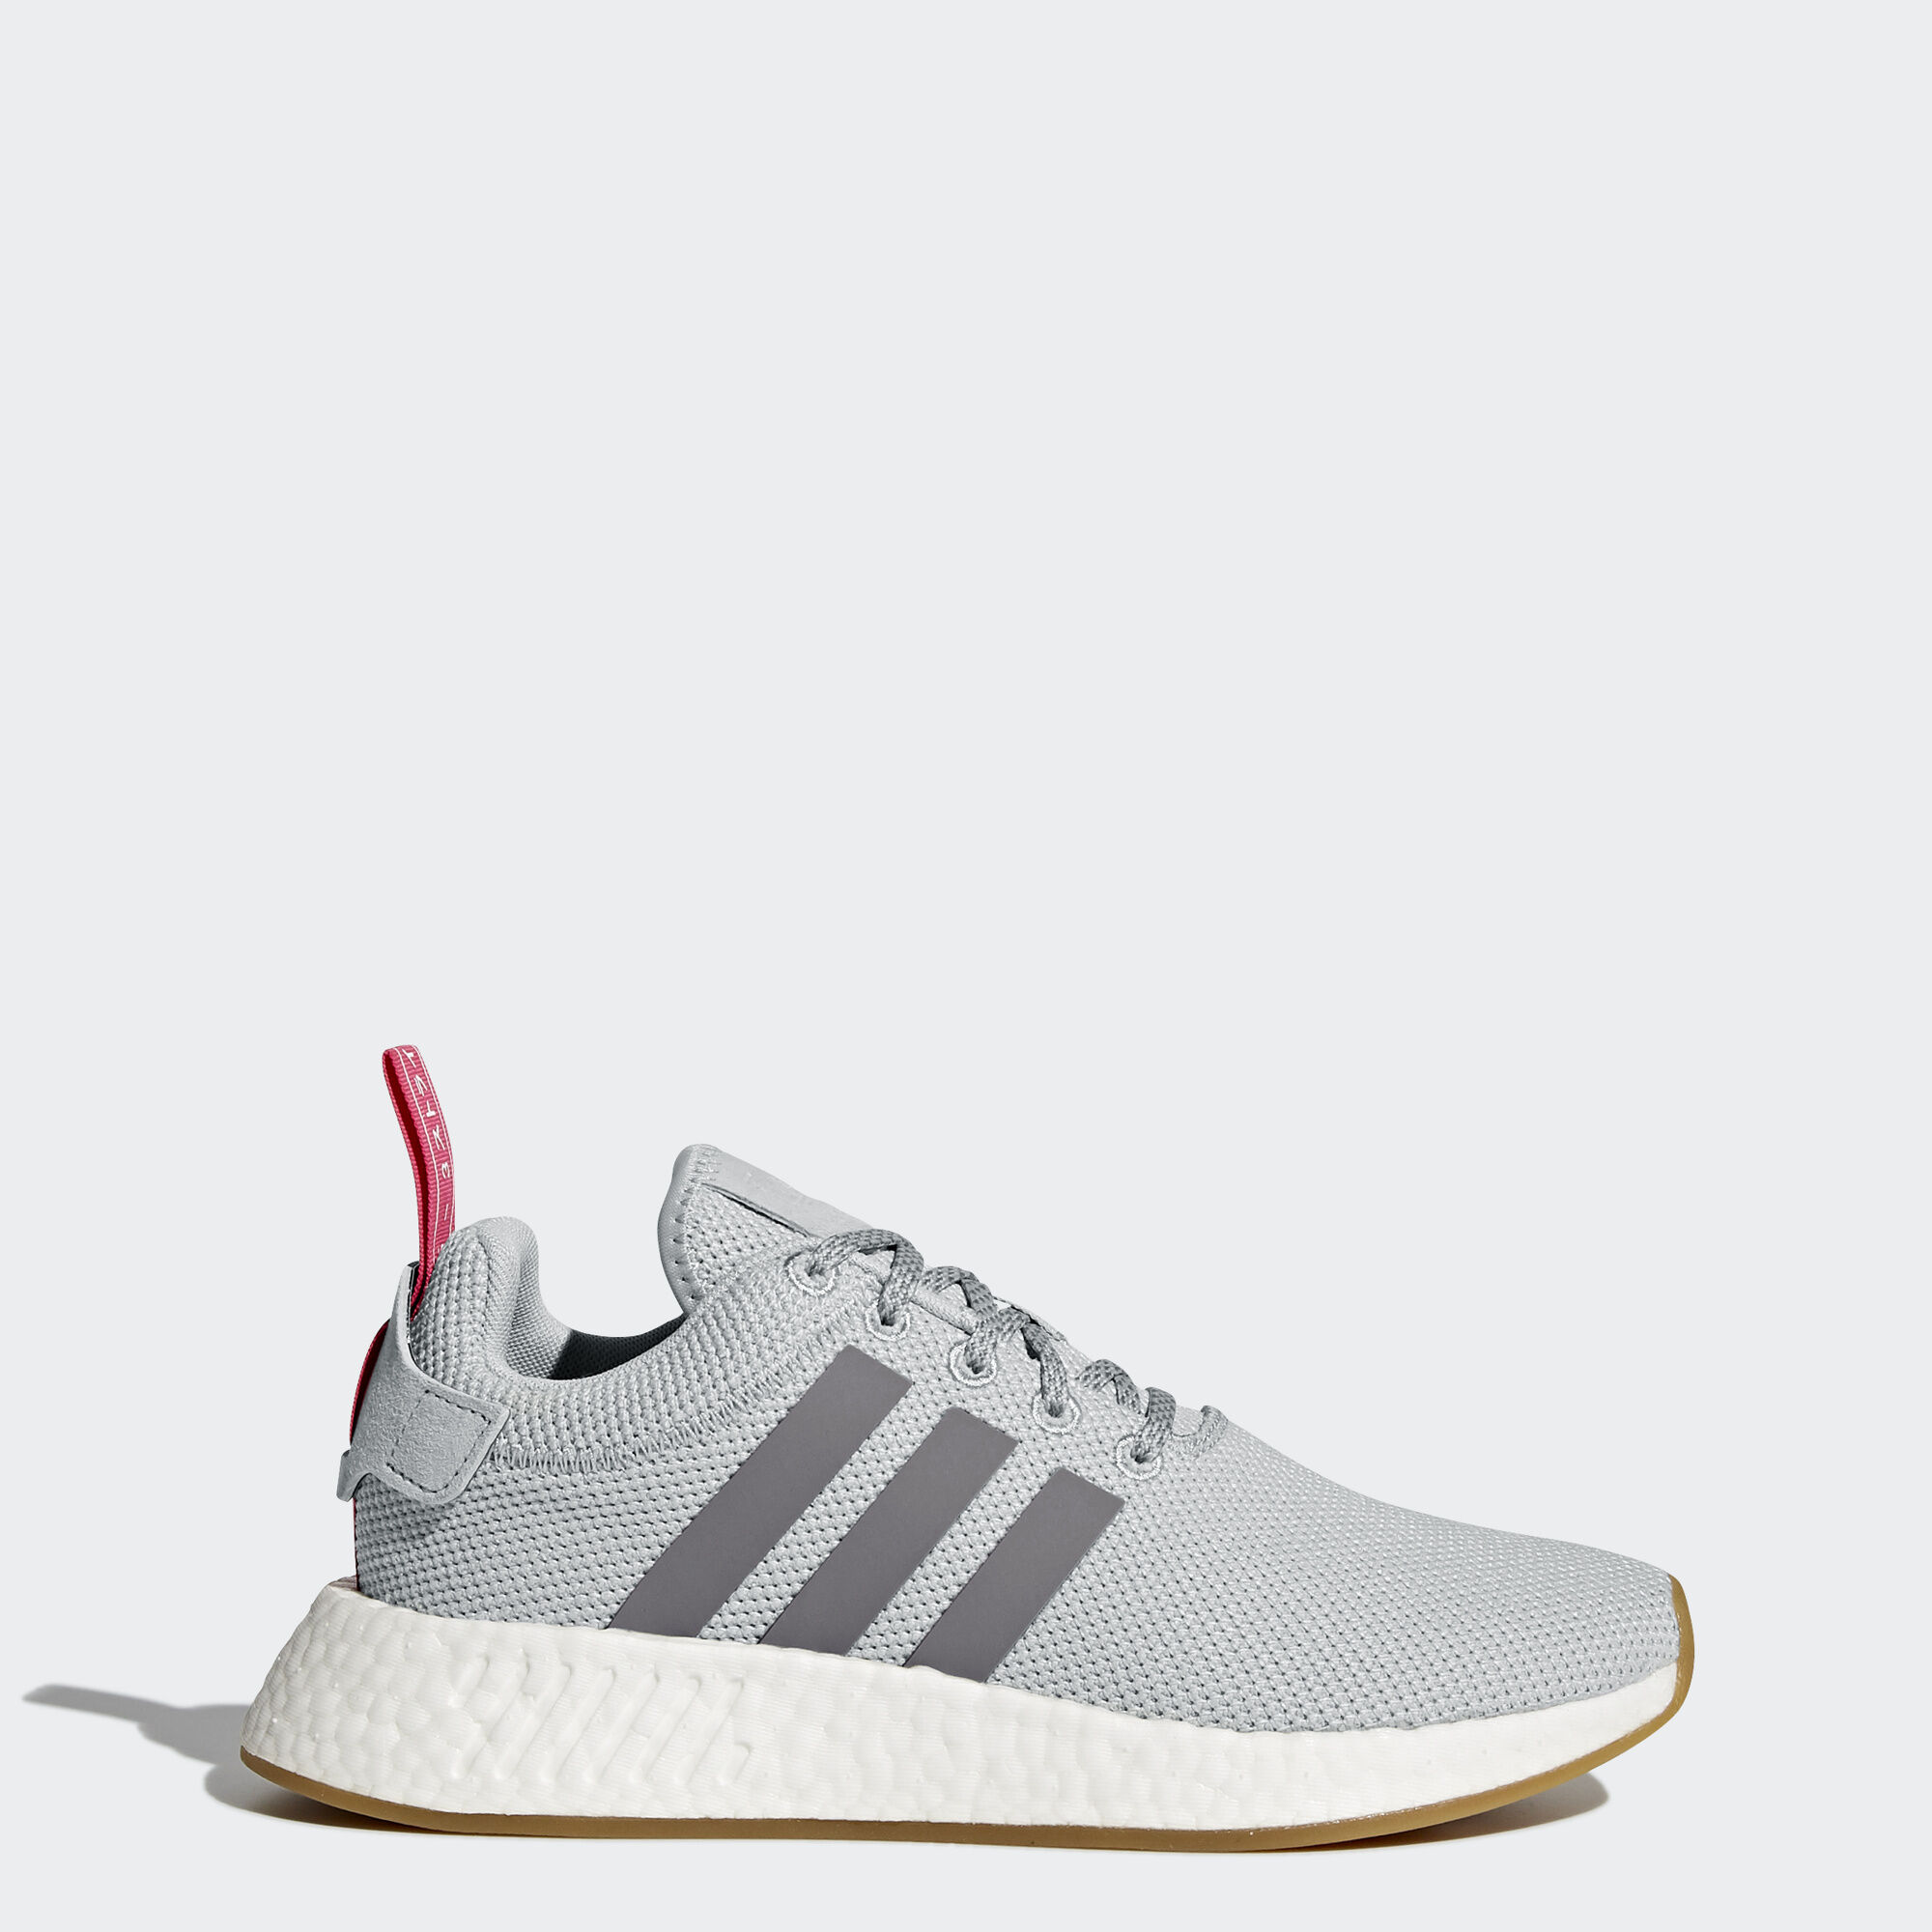 [BY9317] New Women's ADIDAS Originals NMD_R2 - Grey Pink